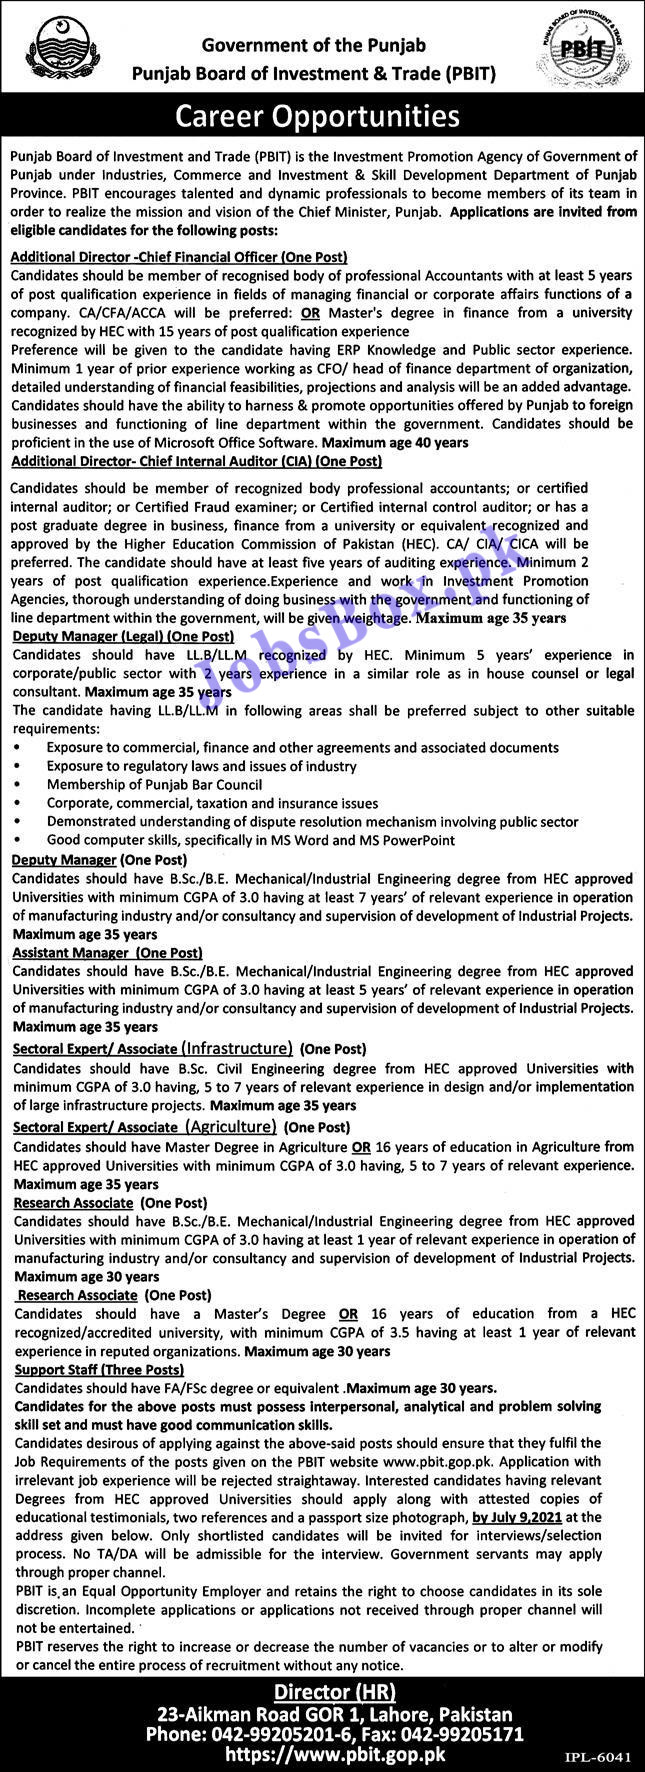 Punjab Board of Investment and Trade PBIT Jobs 2021